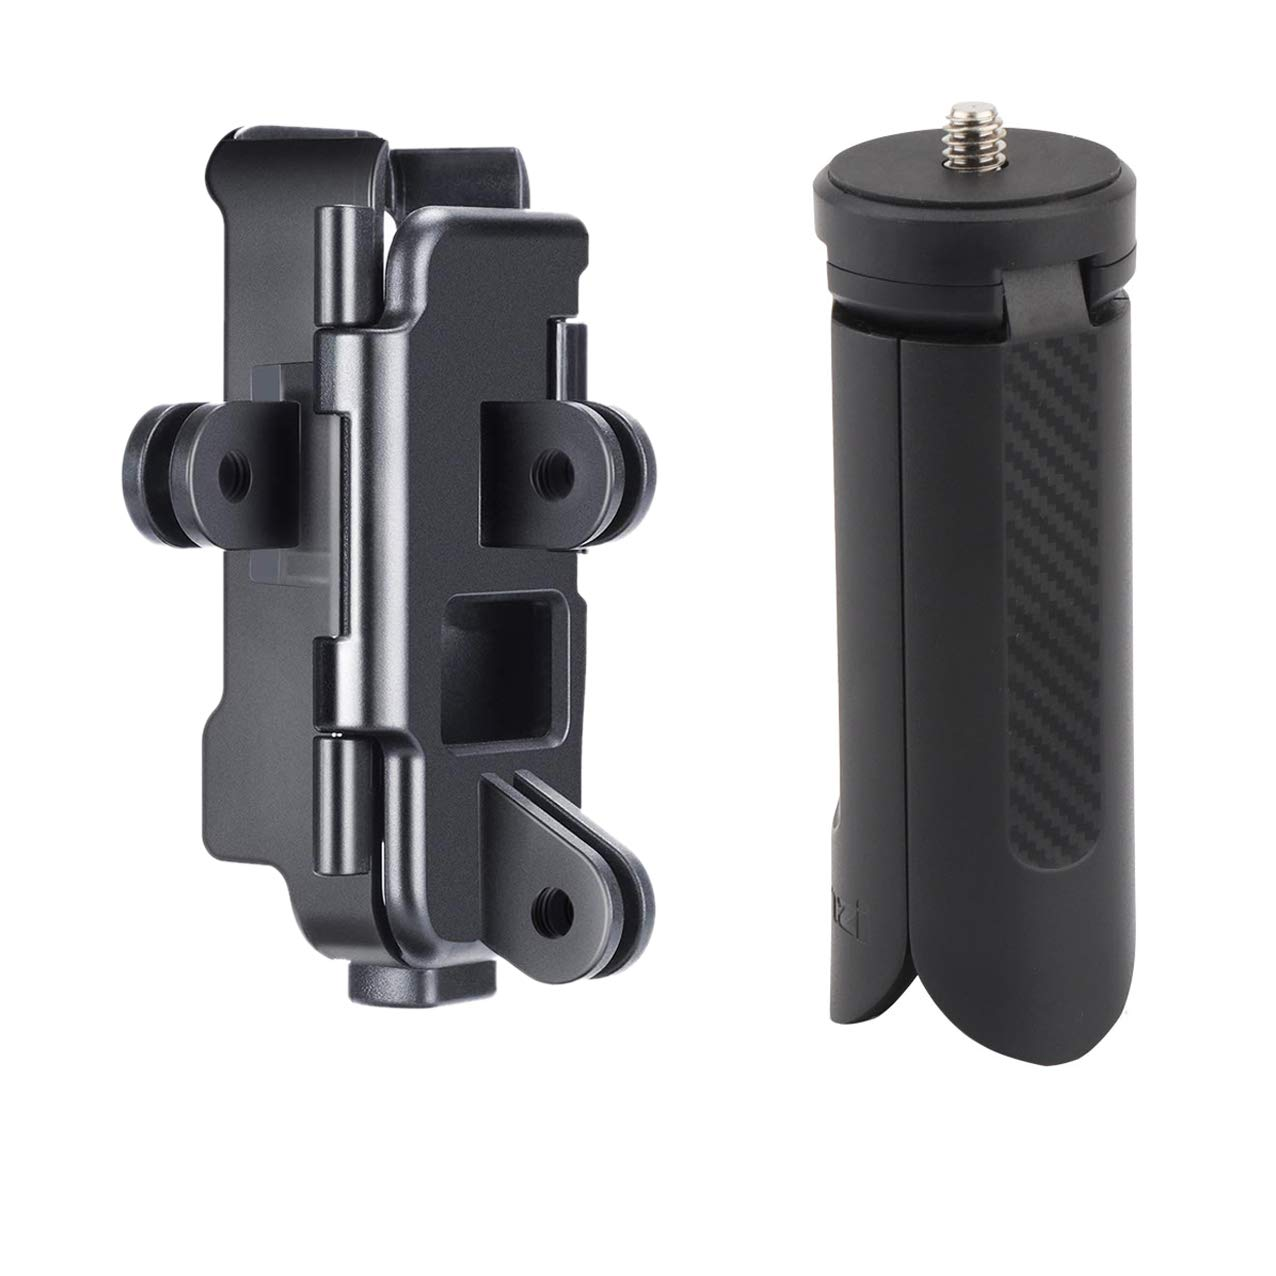 AFVO Accessories Mount Adapter for DJI Osmo Pocket, Also Comes with Mini Tripod Stand by AFVO